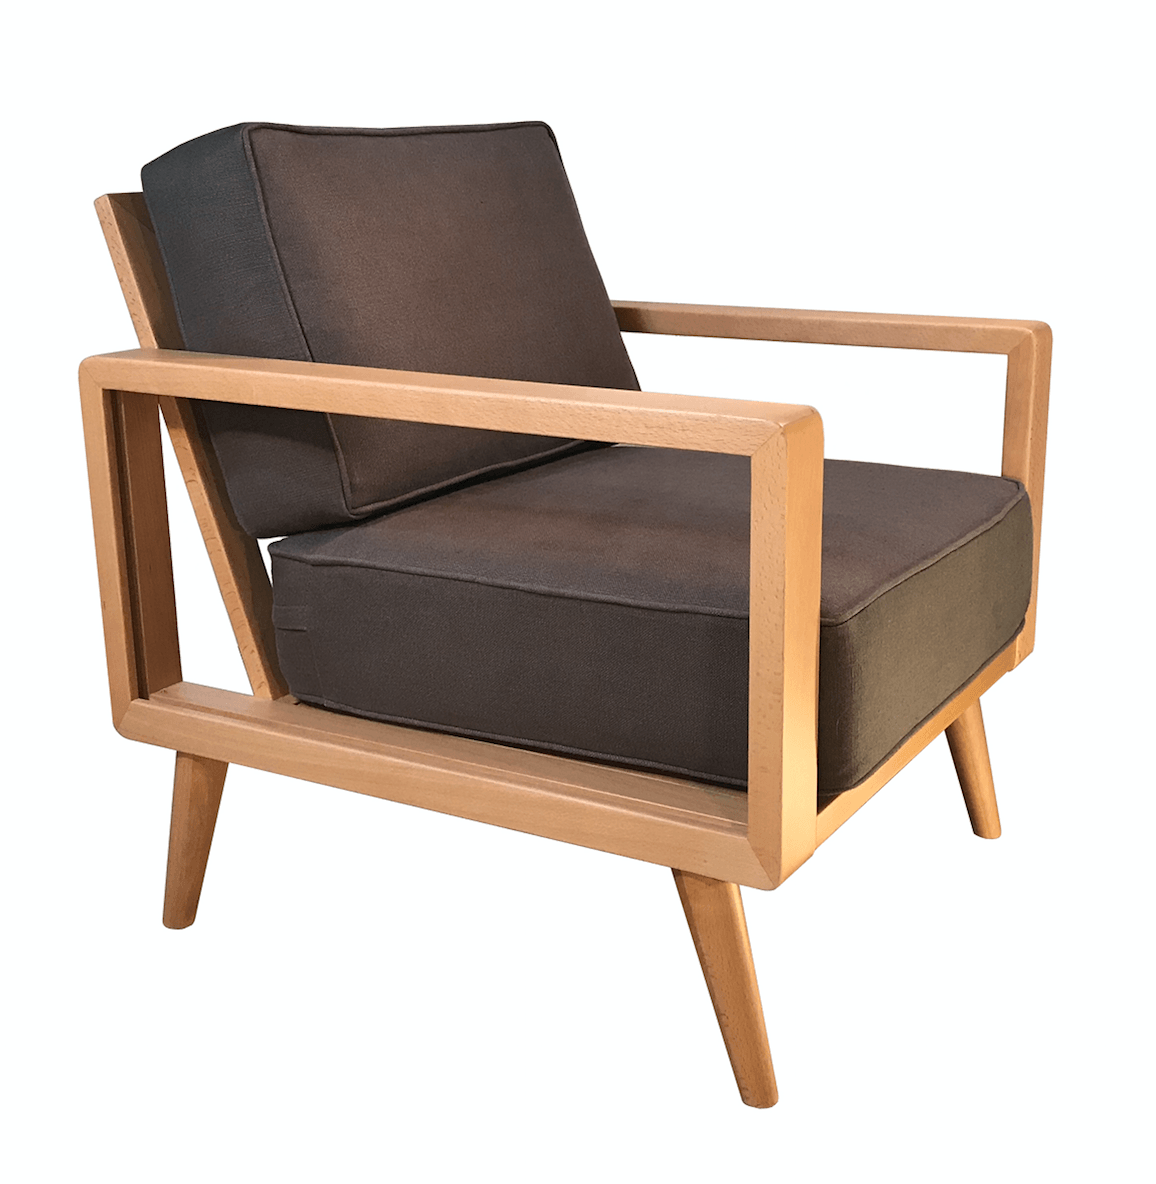 A Natural Mid Century Modern Lounge Chair, Taupe